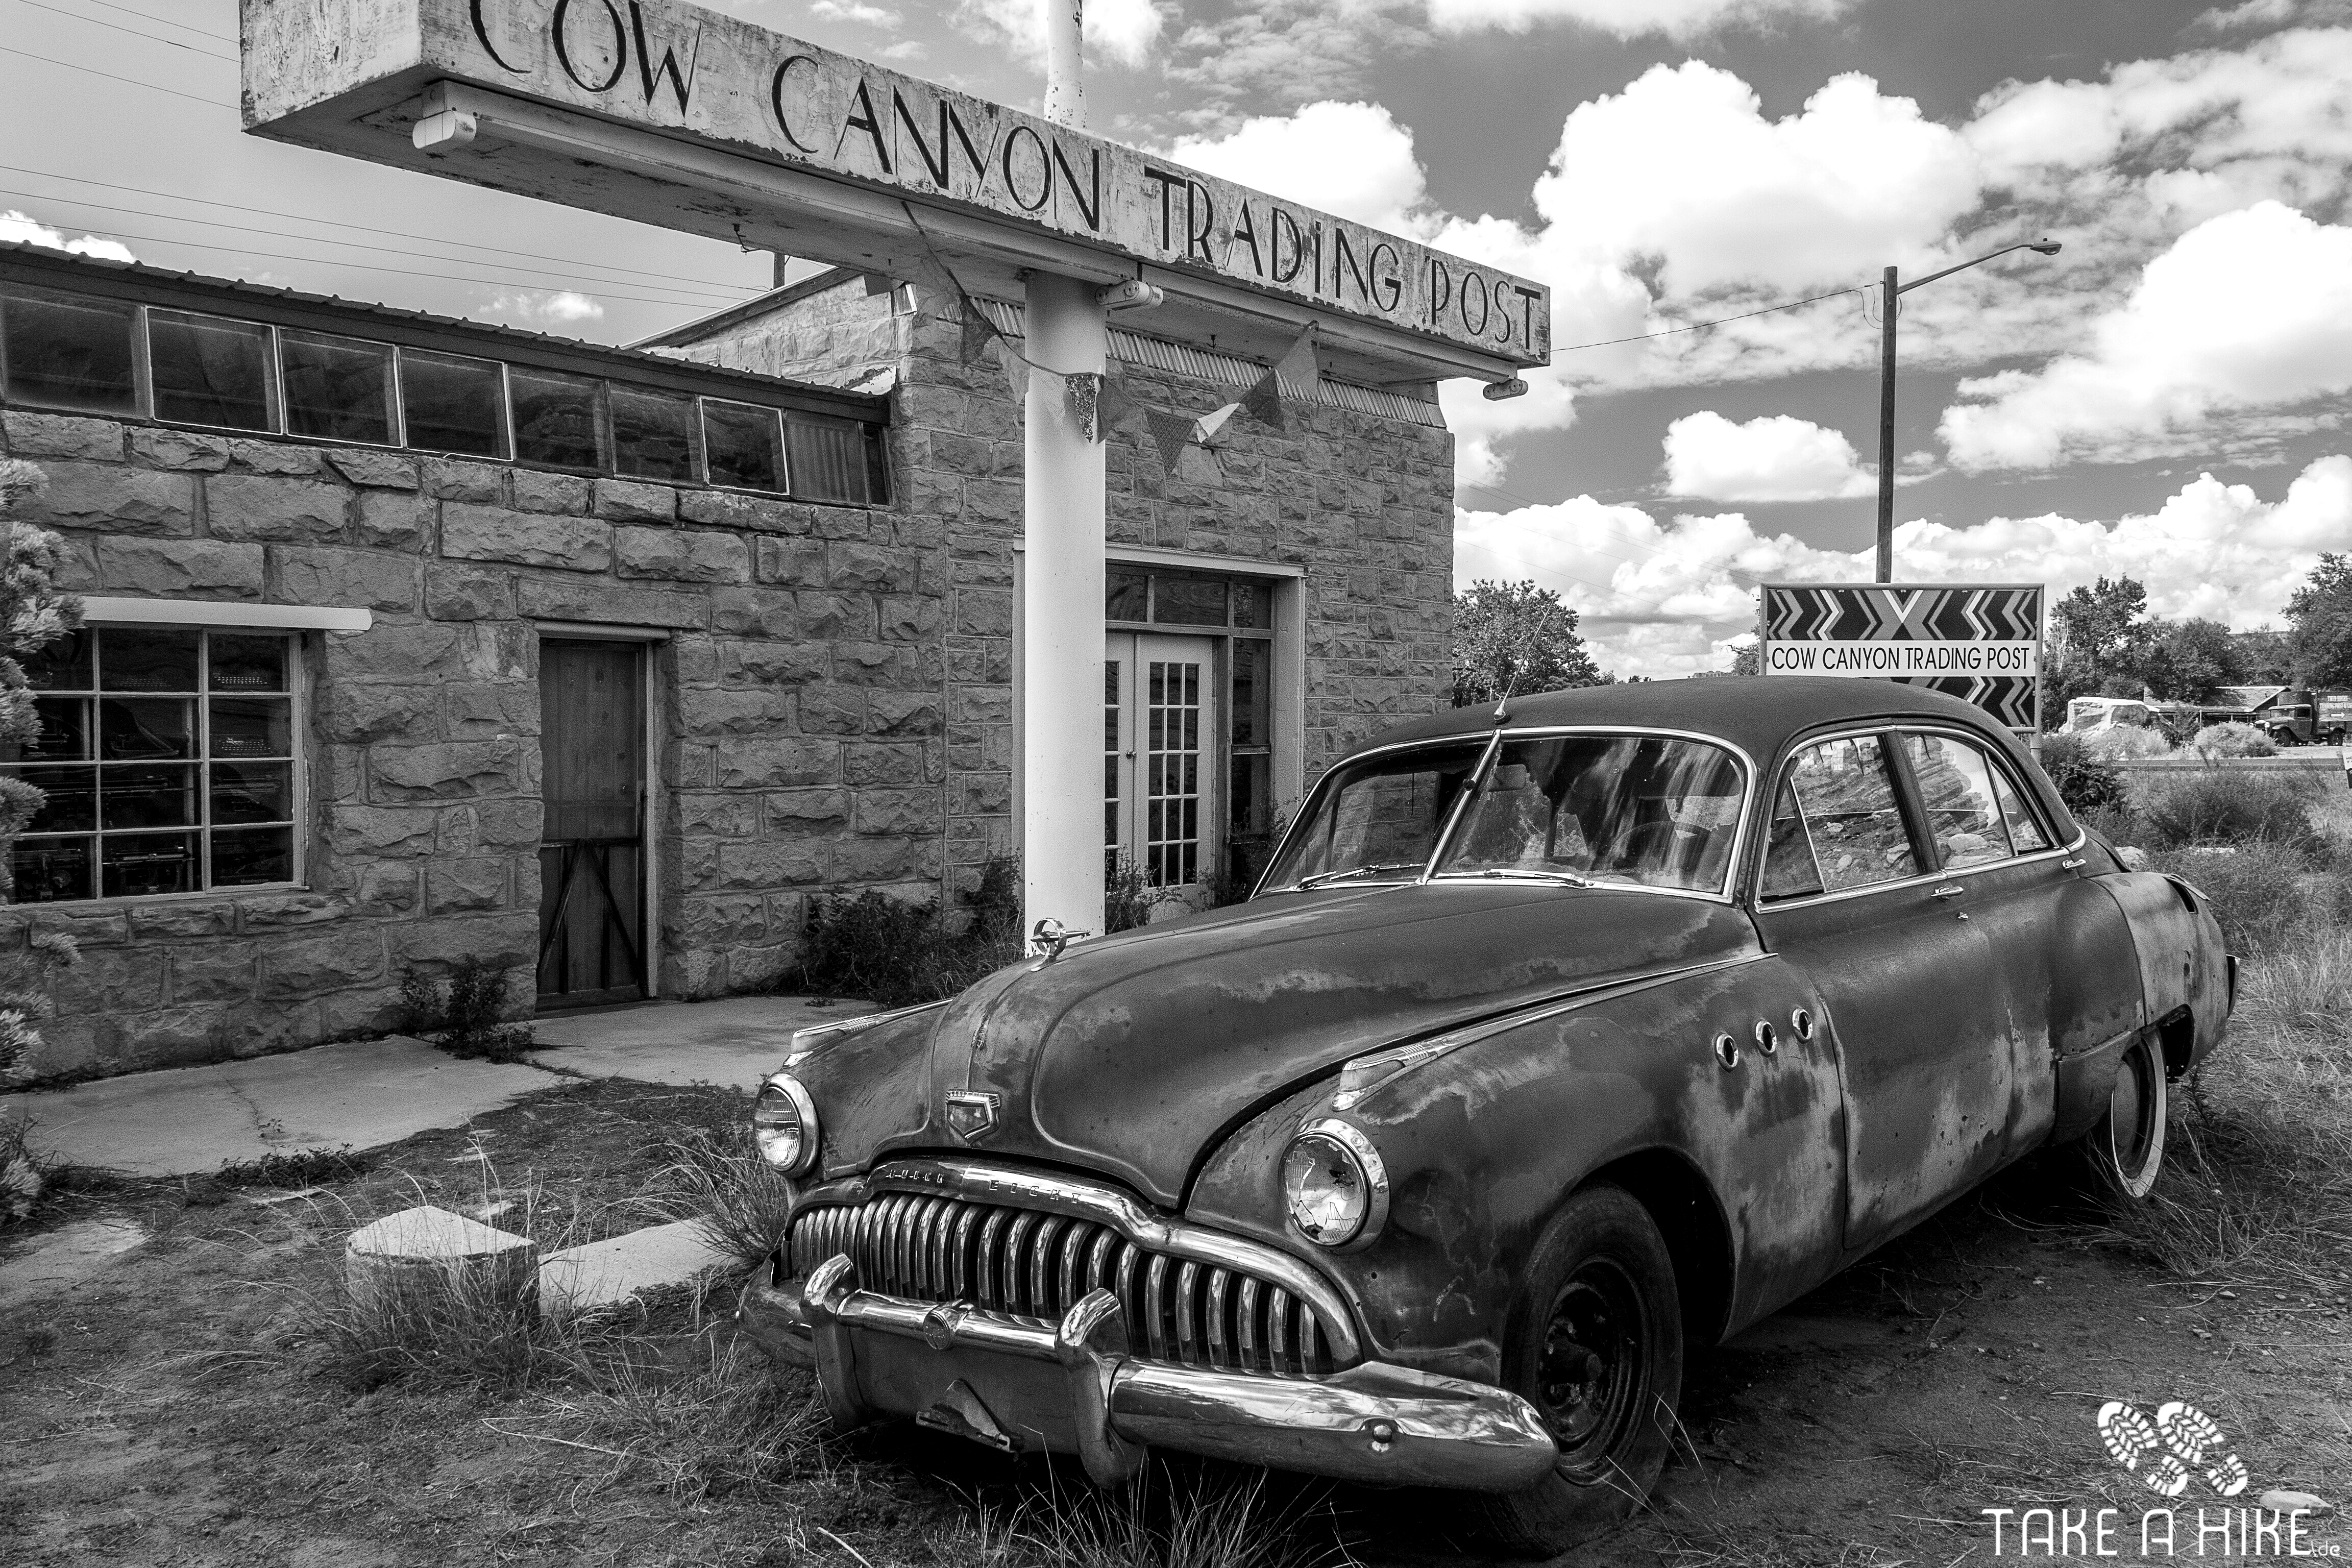 Black&White - Old Car and Trading Post, Bluff, Utah